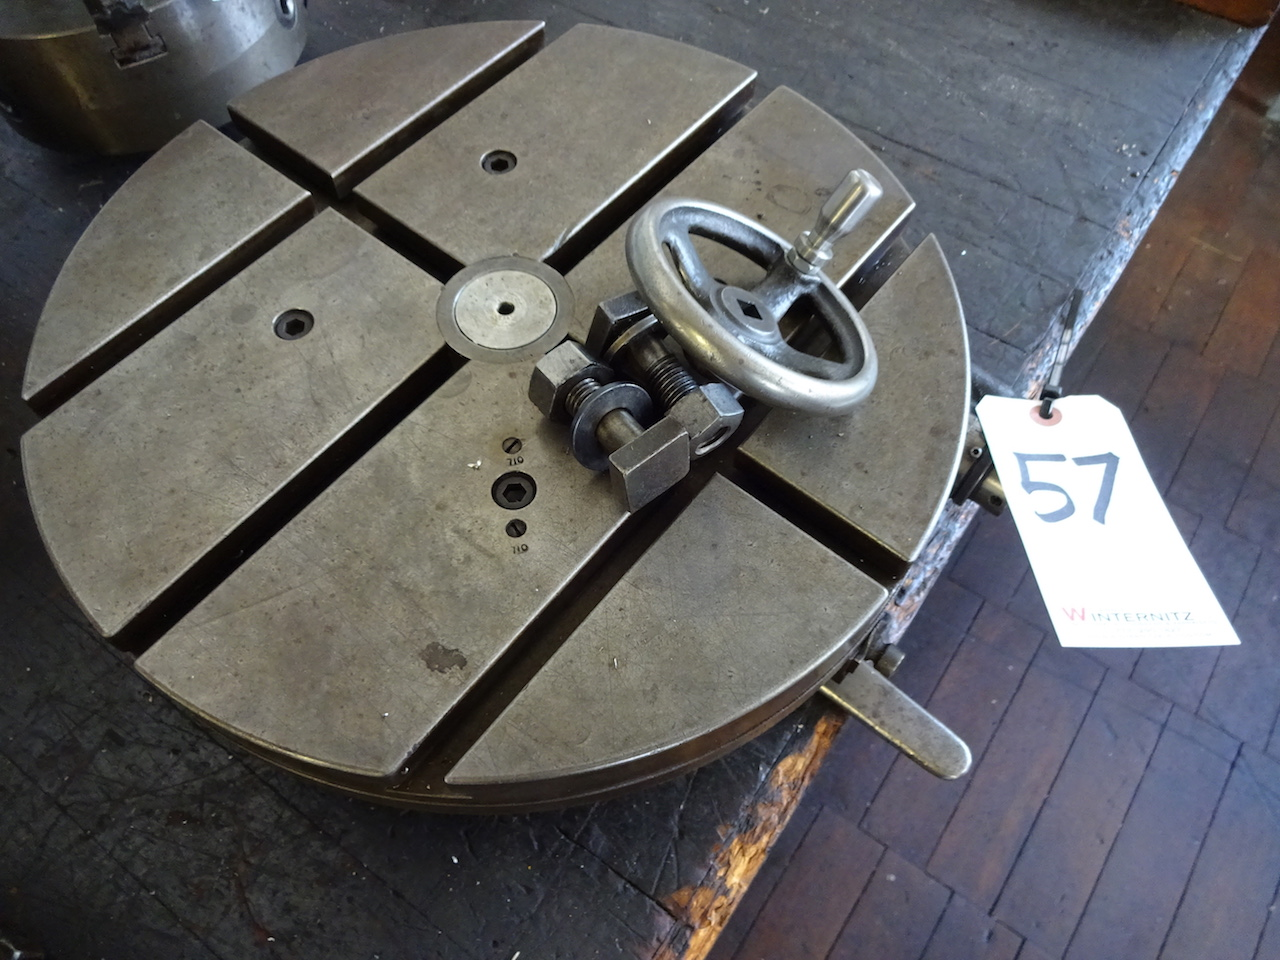 Lot 57 - Gorton 15 in. Rotary Table